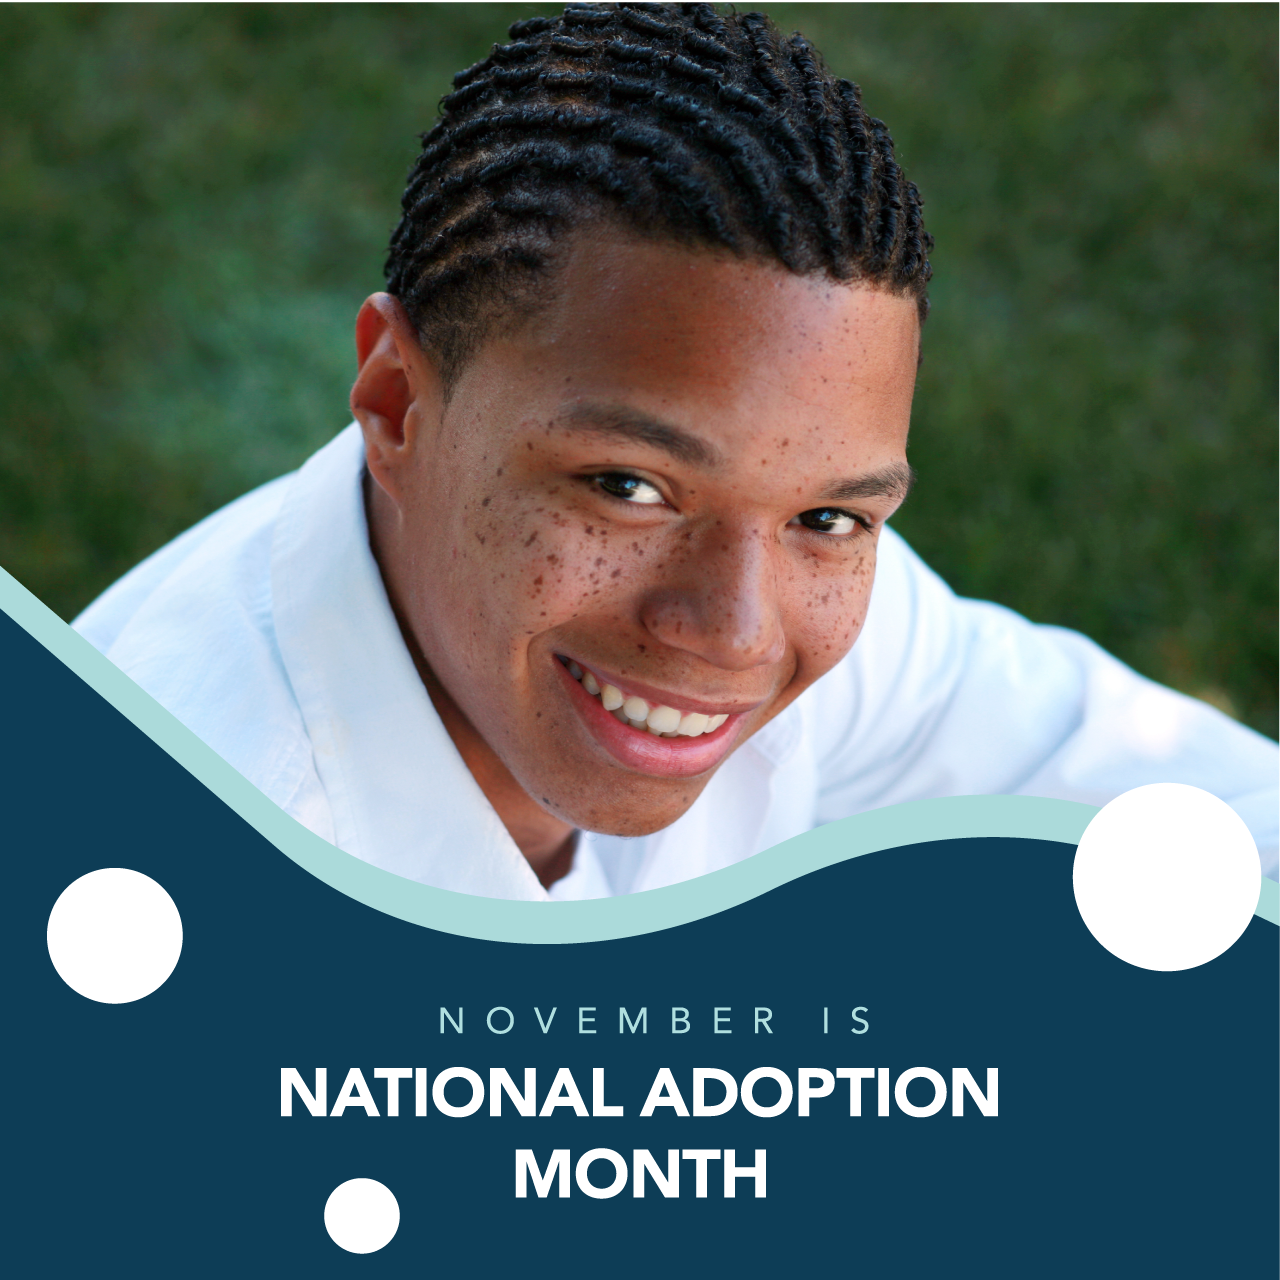 Square shaped Facebook frame example. Square shaped Facebook frame. November is National Adoption Month!